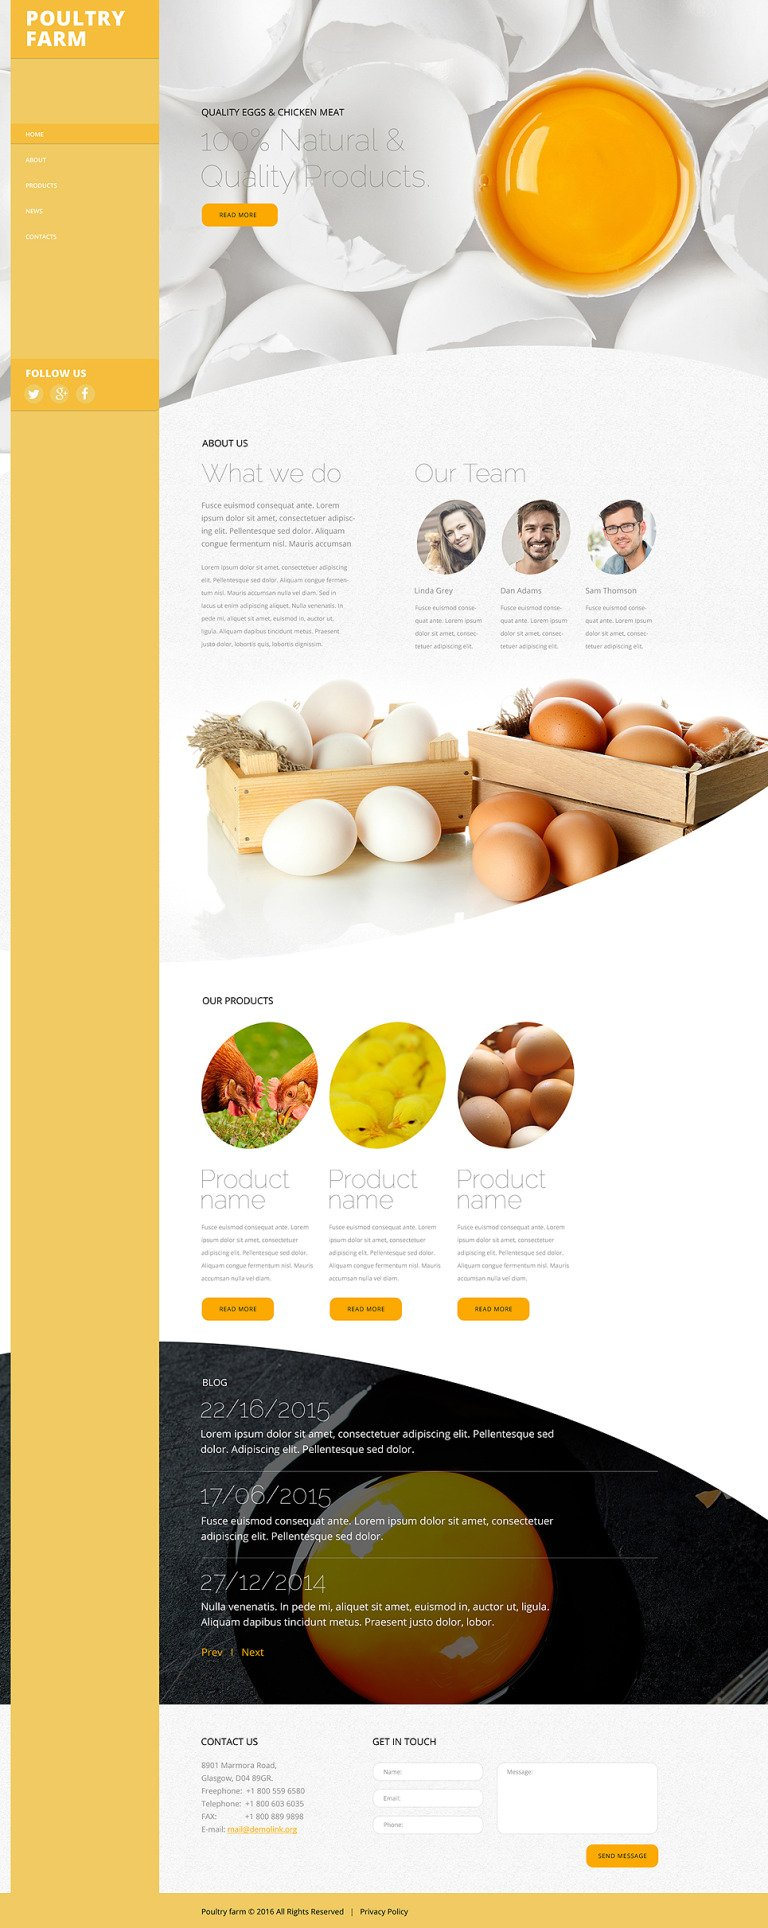 Poultry Farm Website Template New Screenshots BIG